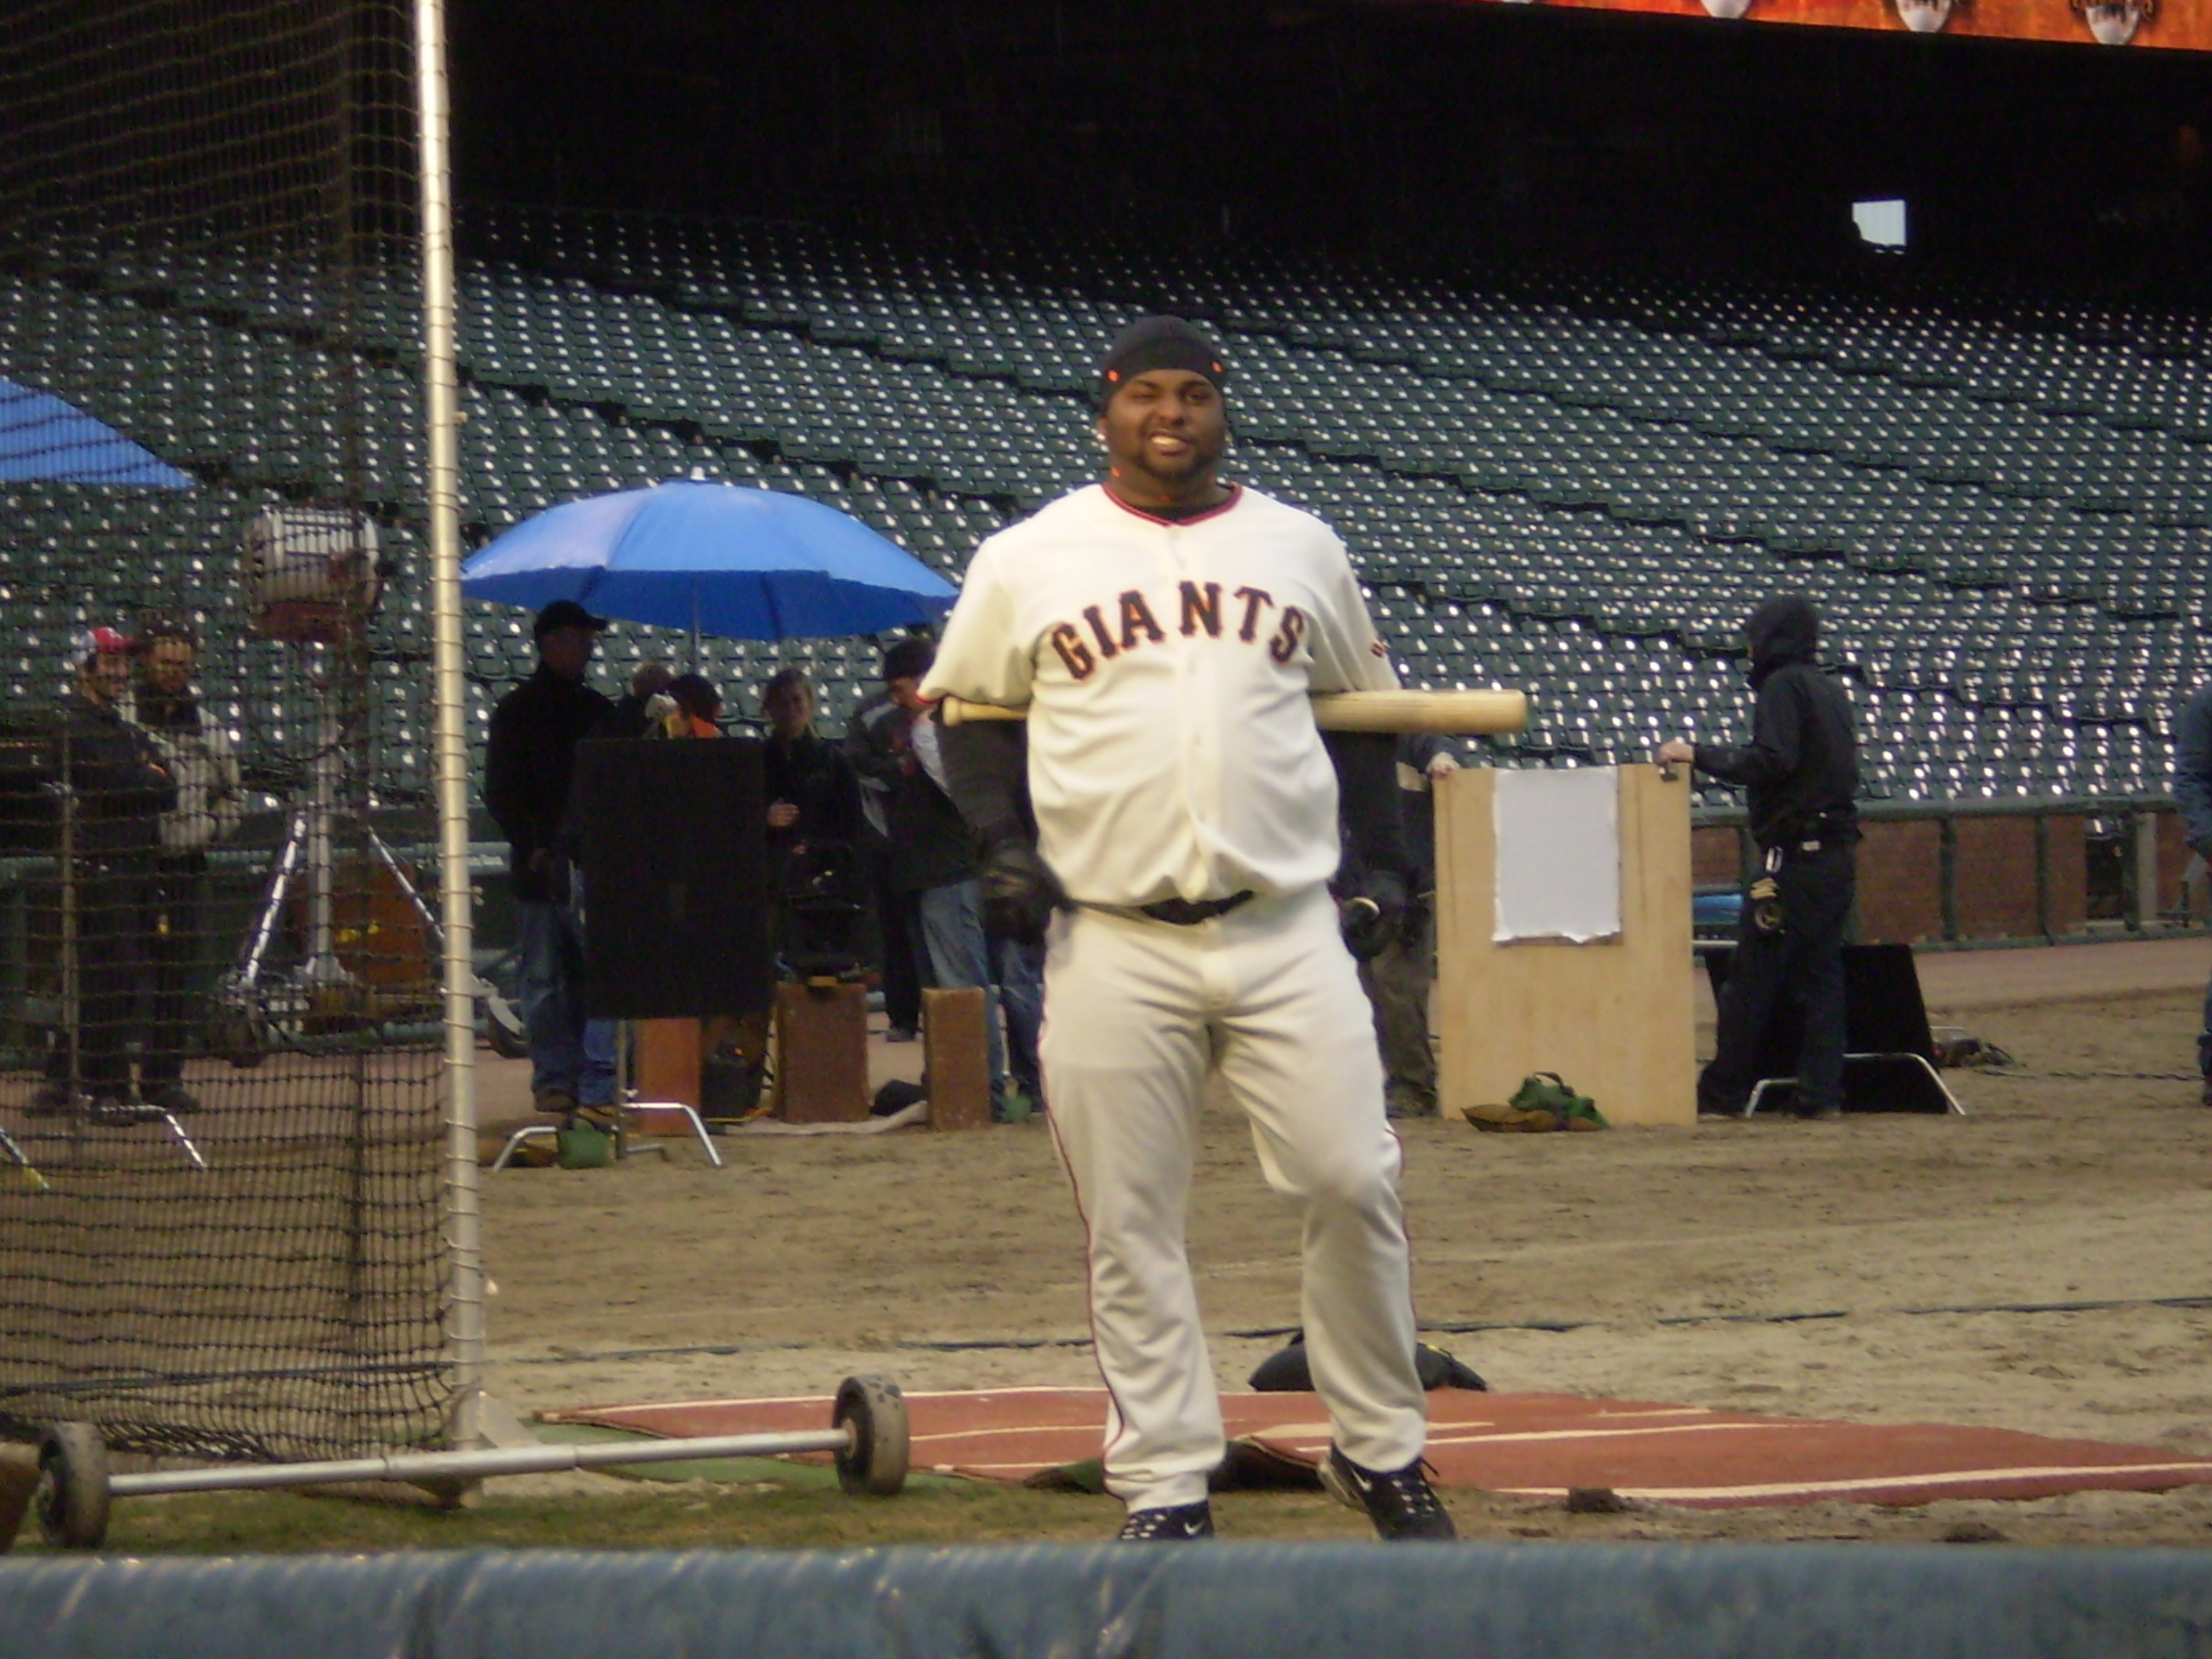 Credit: Steven Robles - SF Giants Rumors